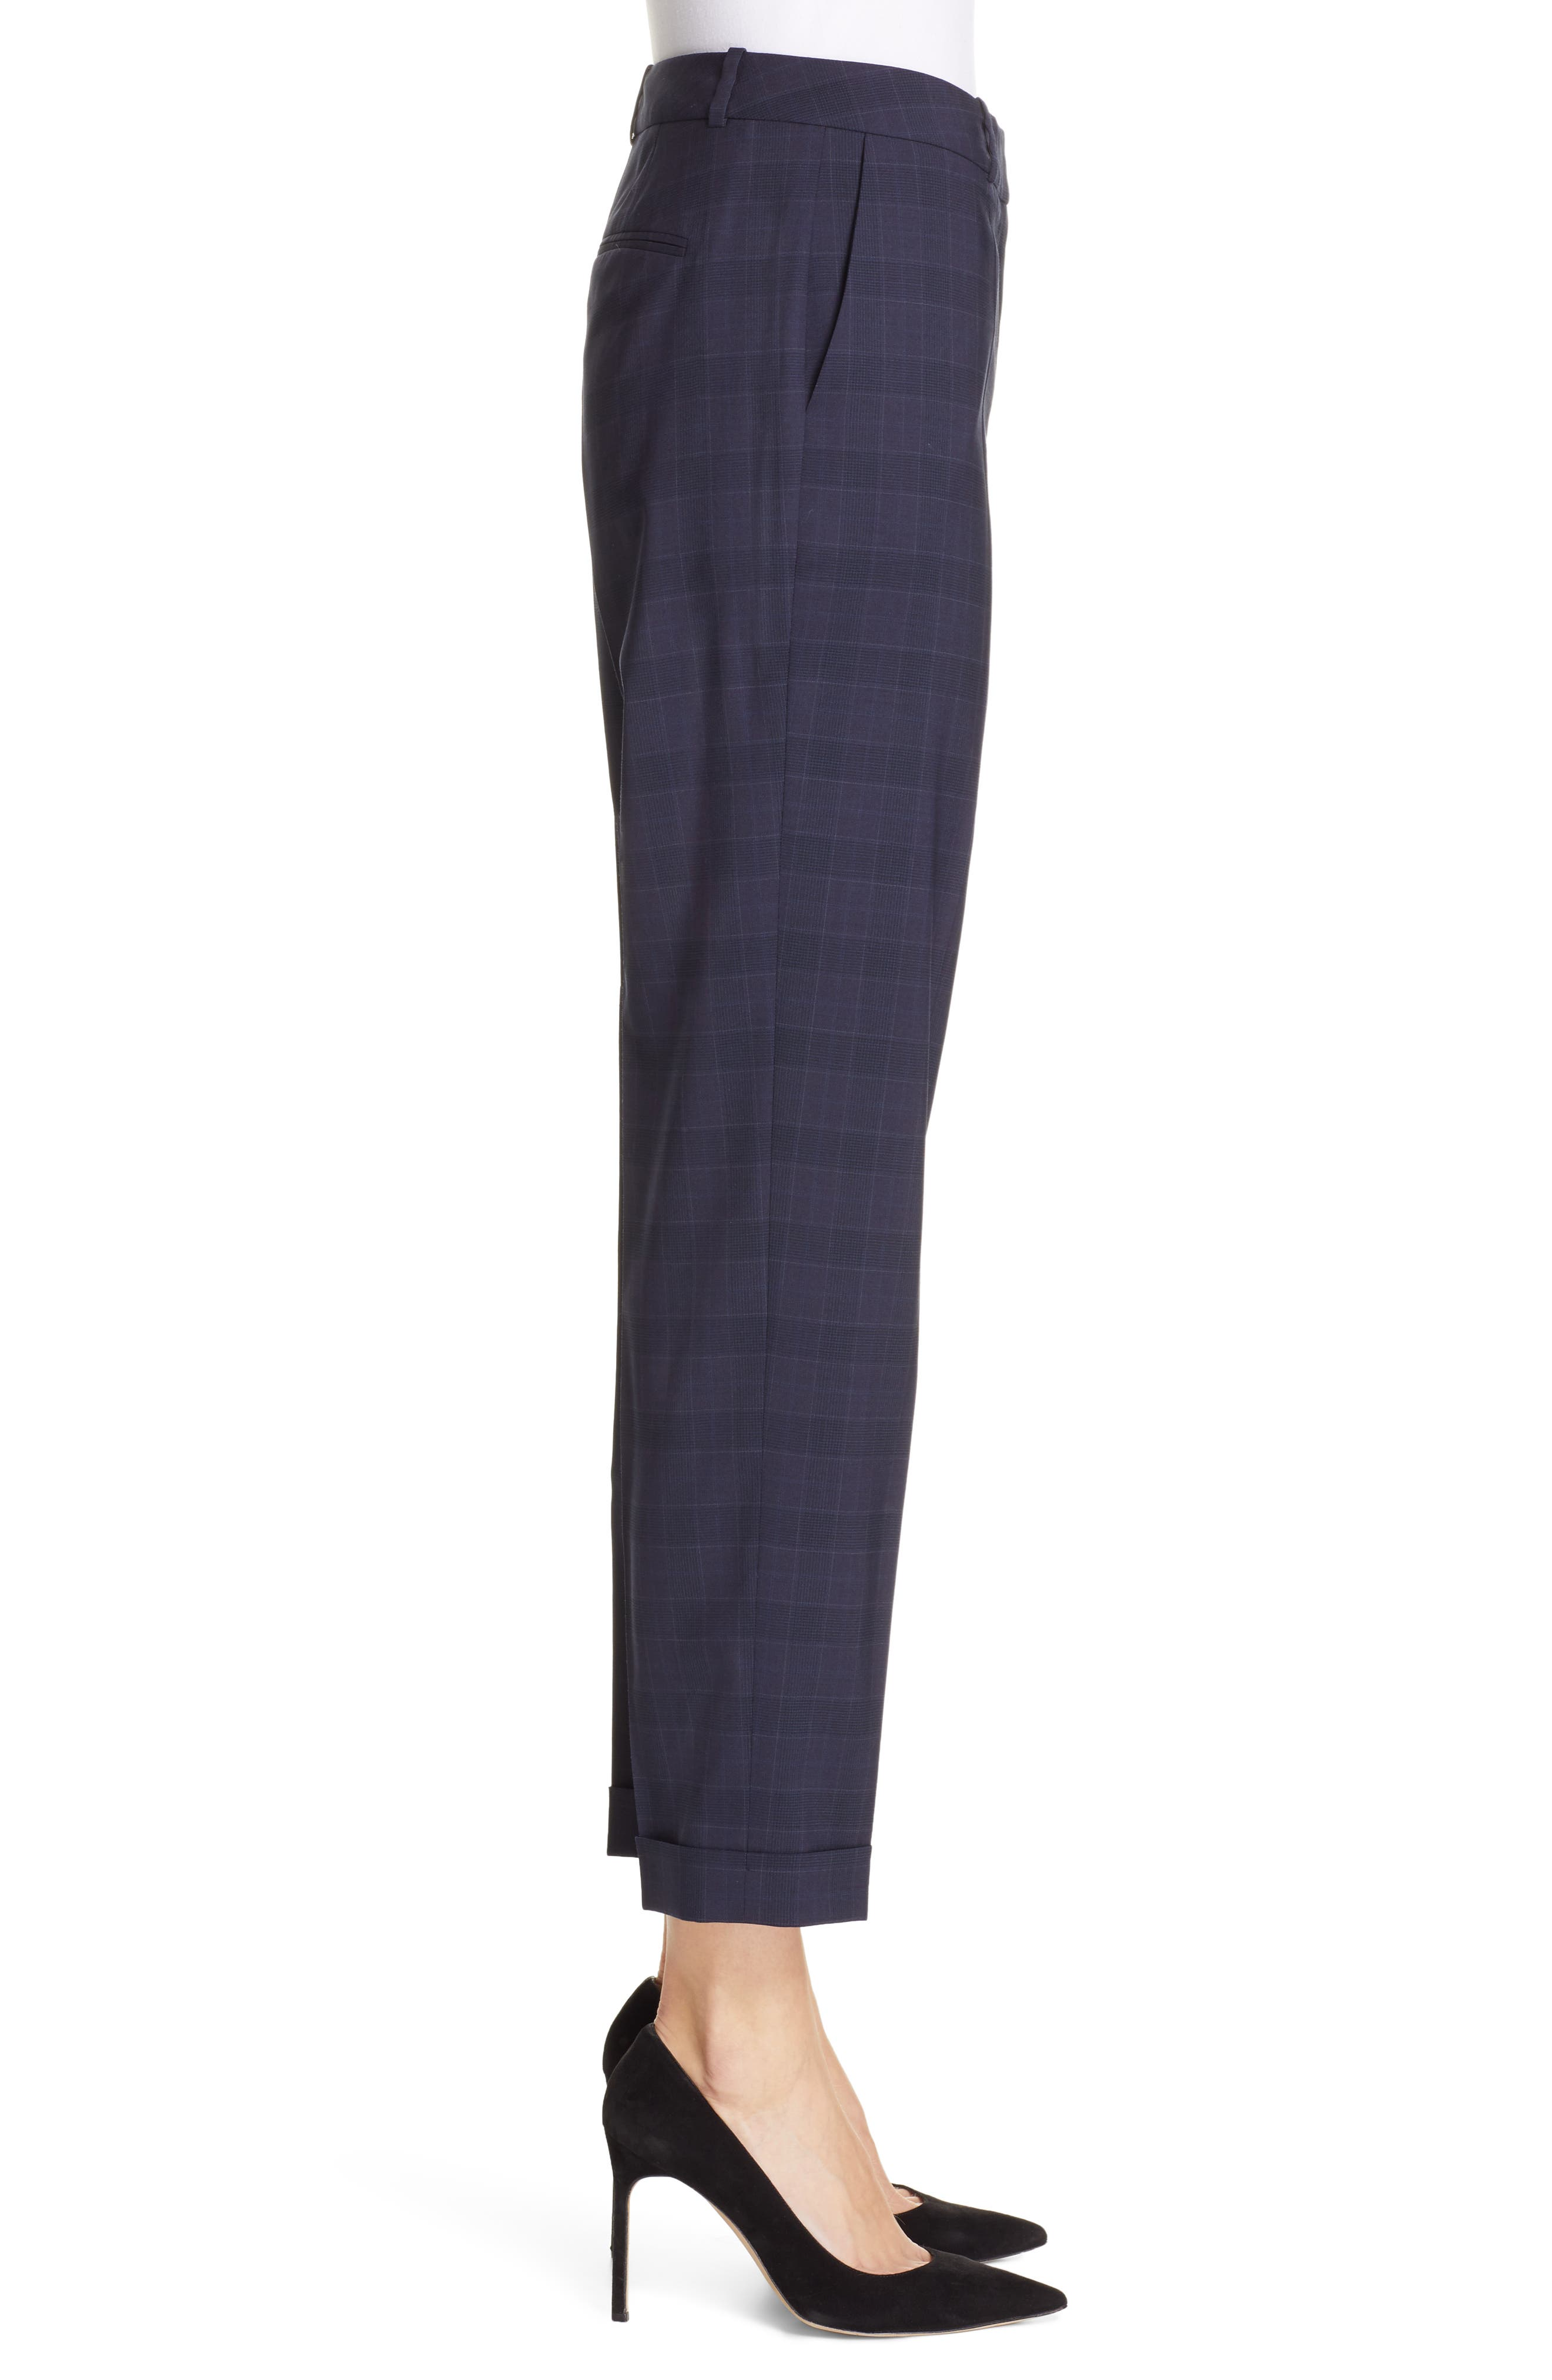 Tocanes Modern Check Wool Ankle Trousers,                             Alternate thumbnail 3, color,                             DARK NAVY FANTASY